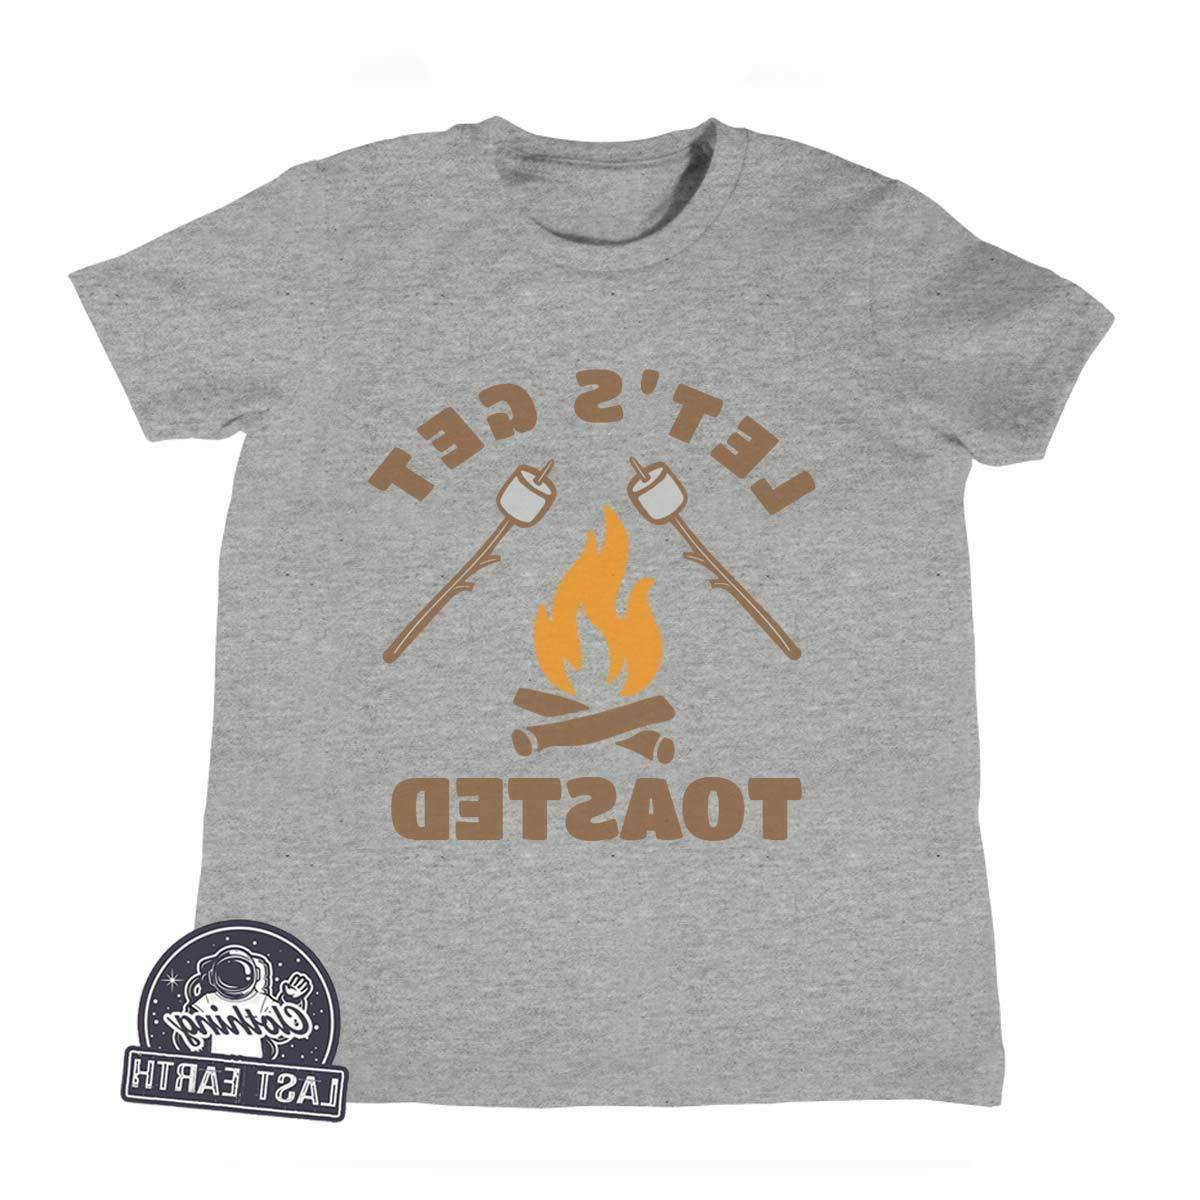 kids camping shirt lets get toasted smores